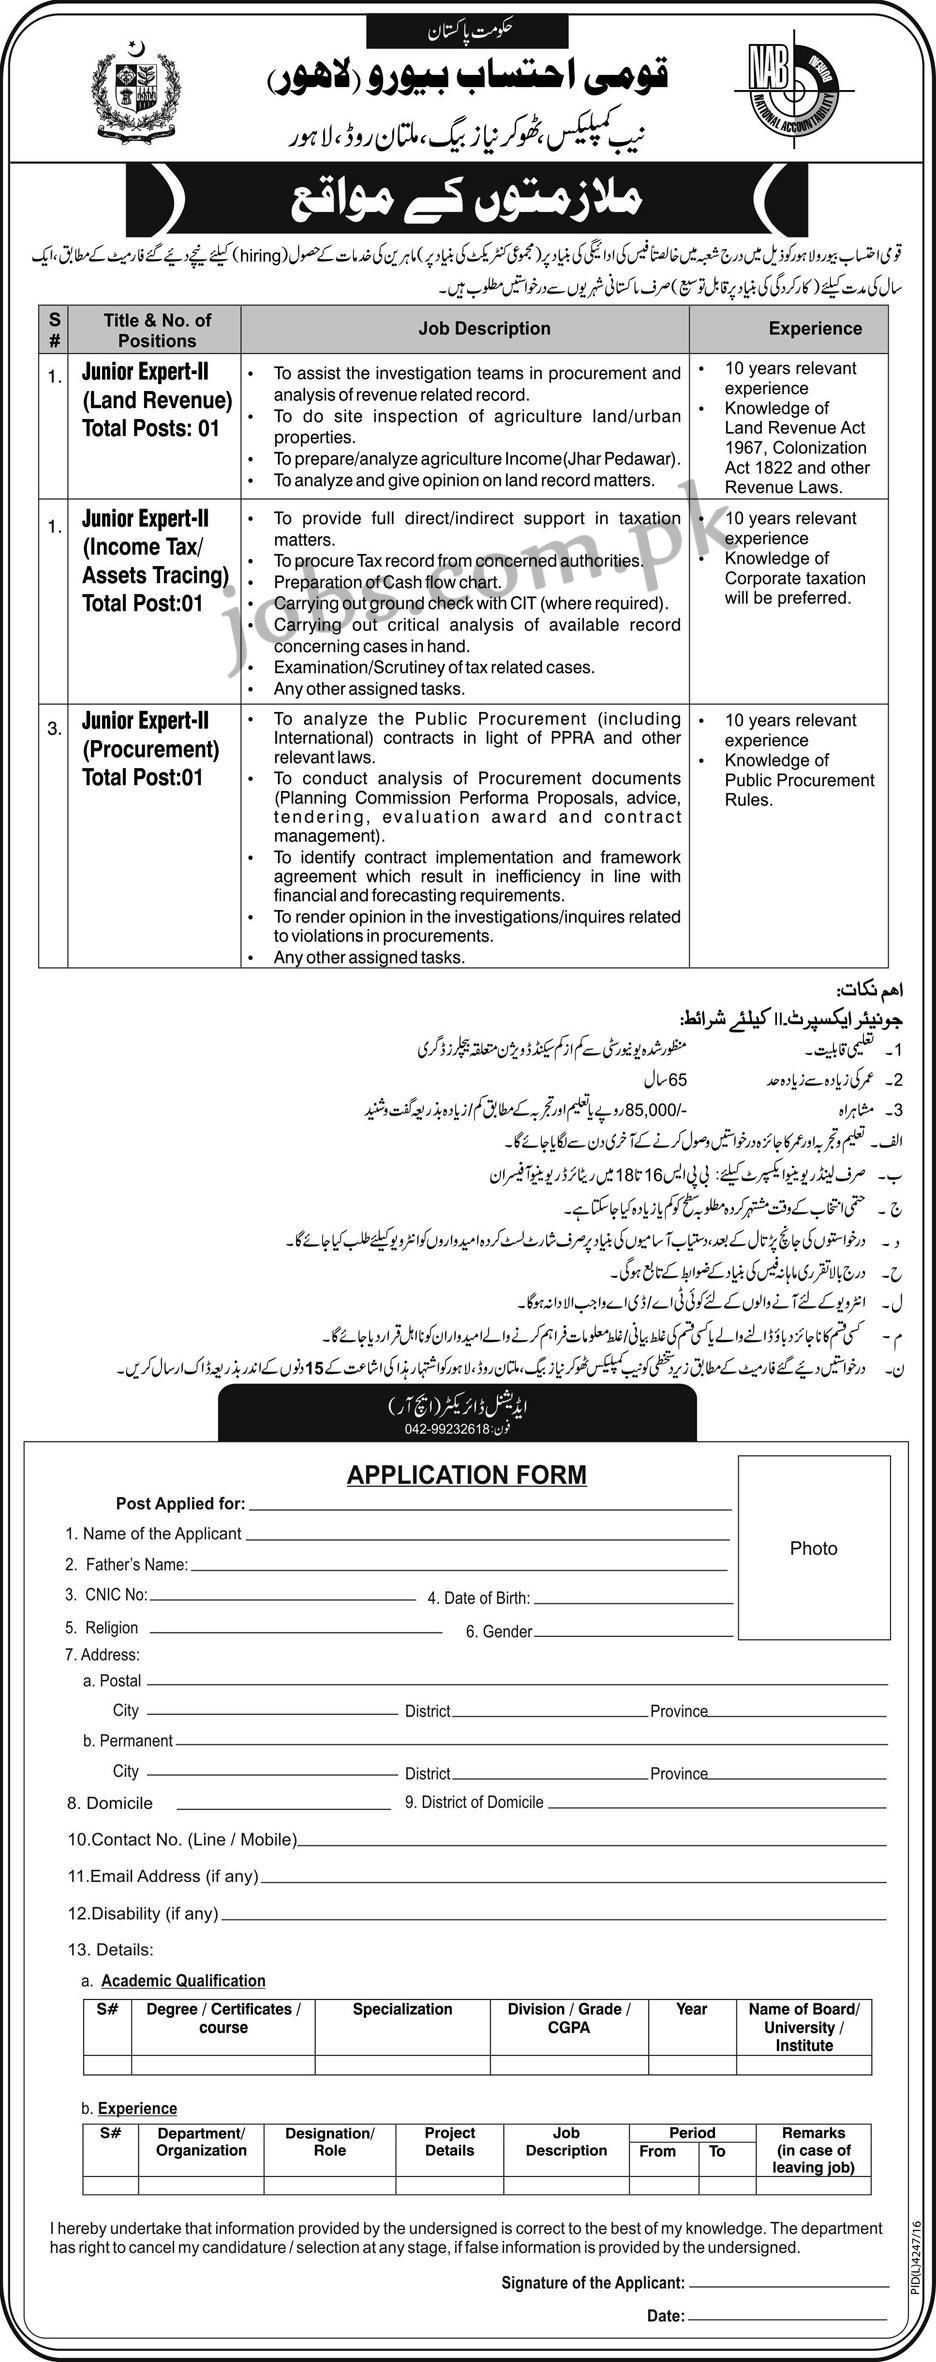 Stage Application Stage Online Job Application Form - oukas.info